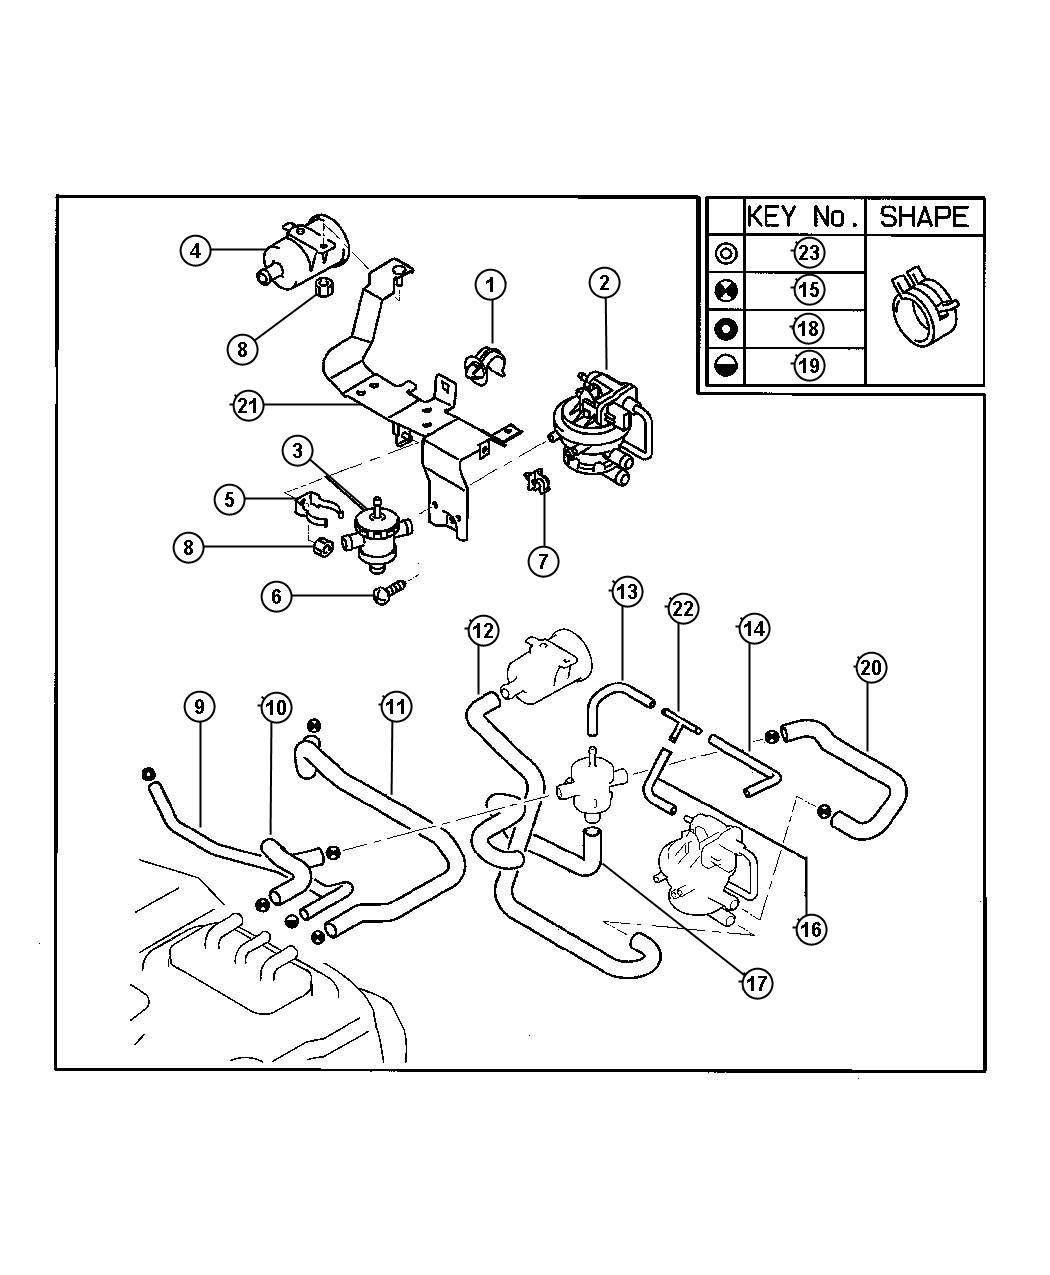 2008 4runner engine fuse box diagram